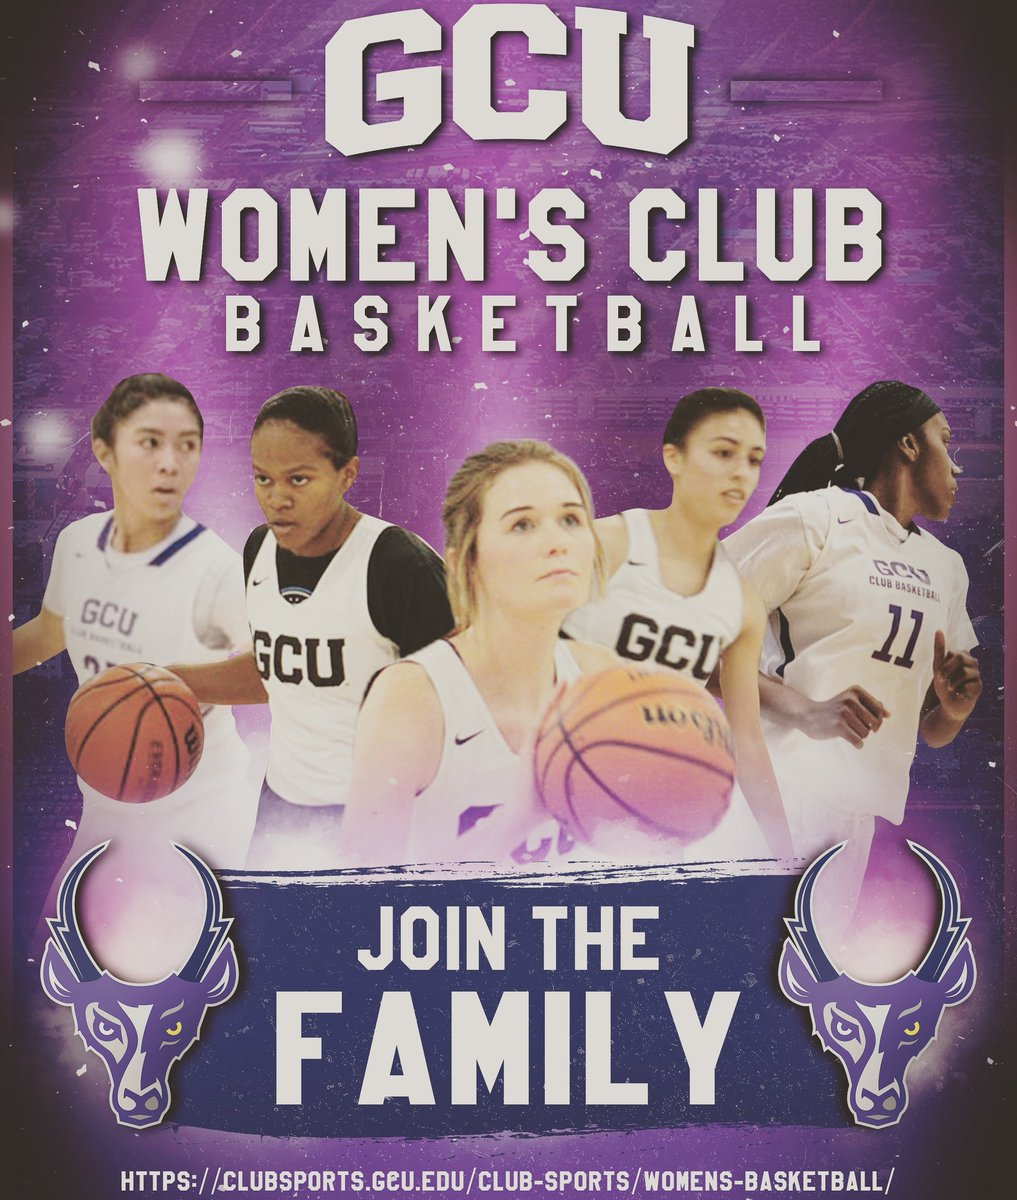 Ladies seeking the opportunity to continue playing basketball at a competitive level? GCU Women's Club Basketball is definitely for you!  Contact Head Coach (Kyle Speed) on IG at justme_kylespeed or visit:  https://t.co/fc8GKPJmYE   #gcuclubsports #gcu #gculopes #gcubasketball https://t.co/0yX4lSnVmK